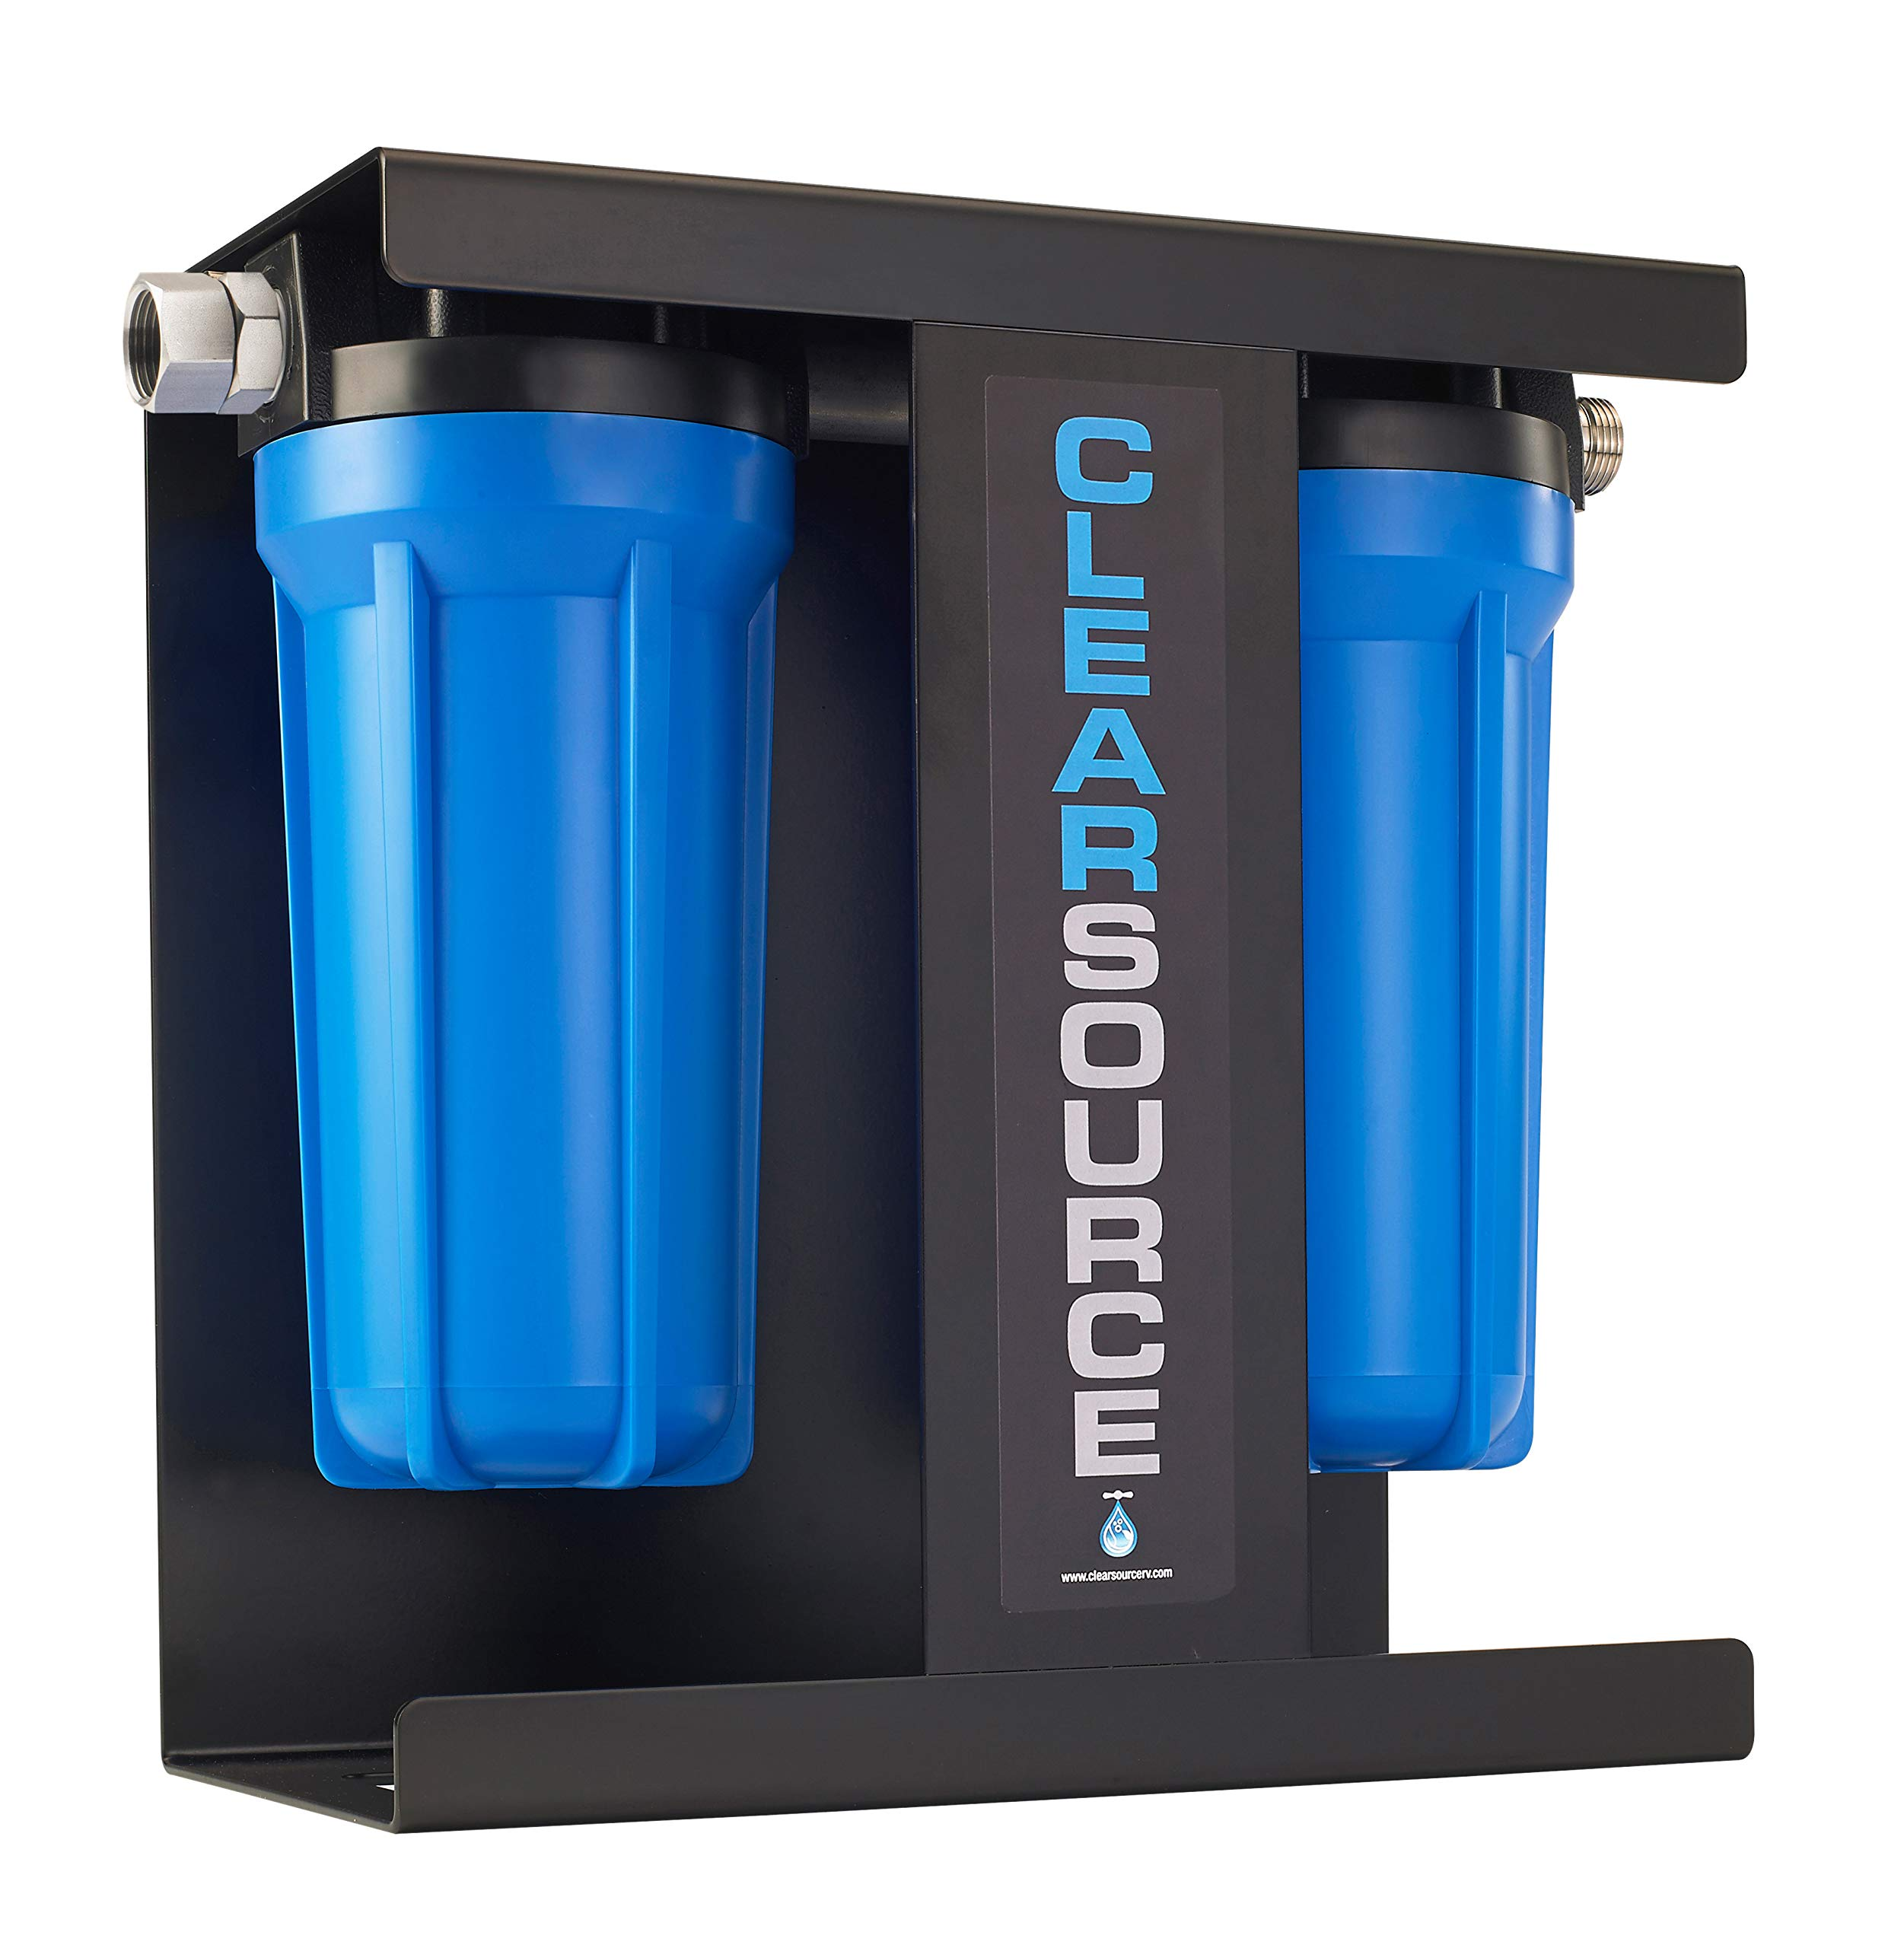 Clearsource Premium RV Water Filter System   Pristine Water. Unparalleled Water Flow. Built-in Stand. by CLEARSOURCE